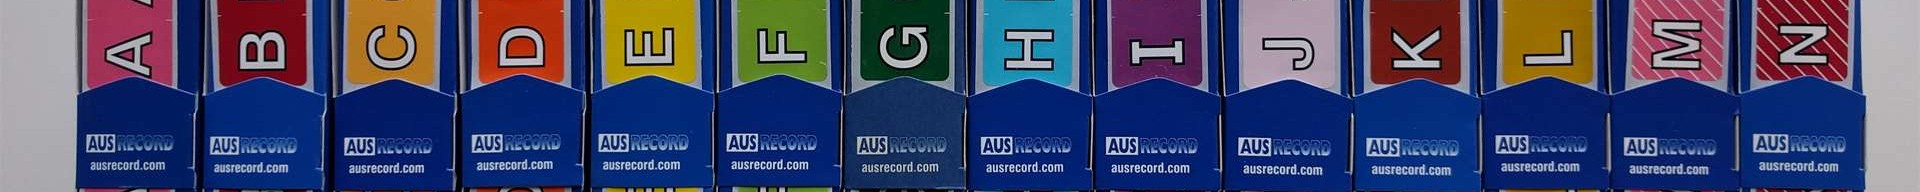 ausrecord ausrecords filing kings labels shelving perth wa ascot